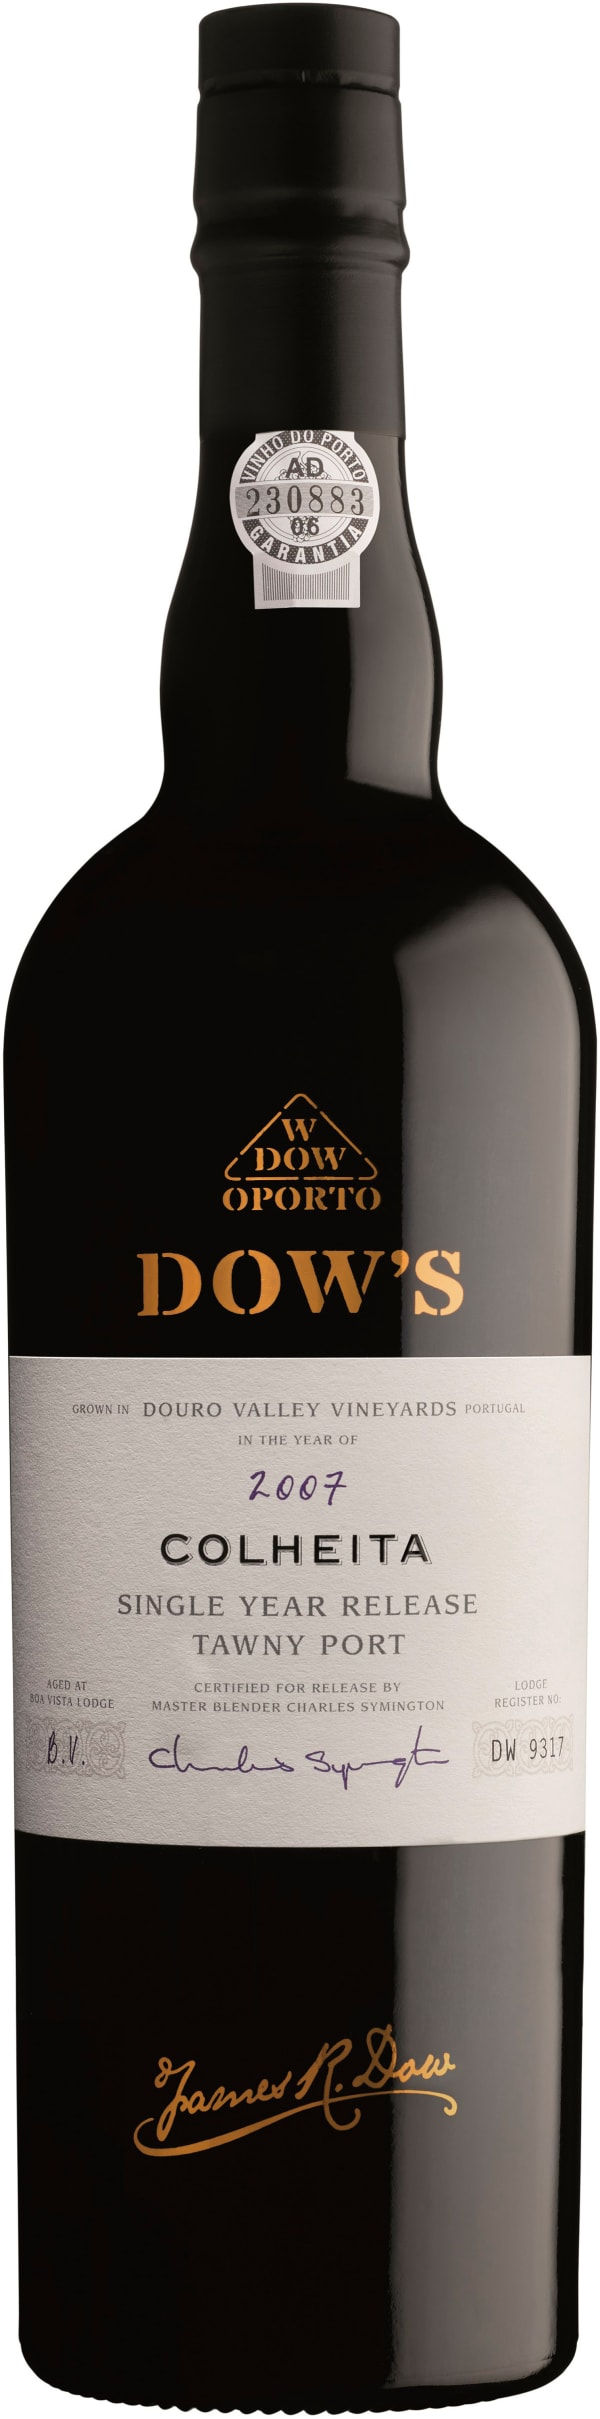 Dow's Colheita Single Harvest Tawny Port 2002